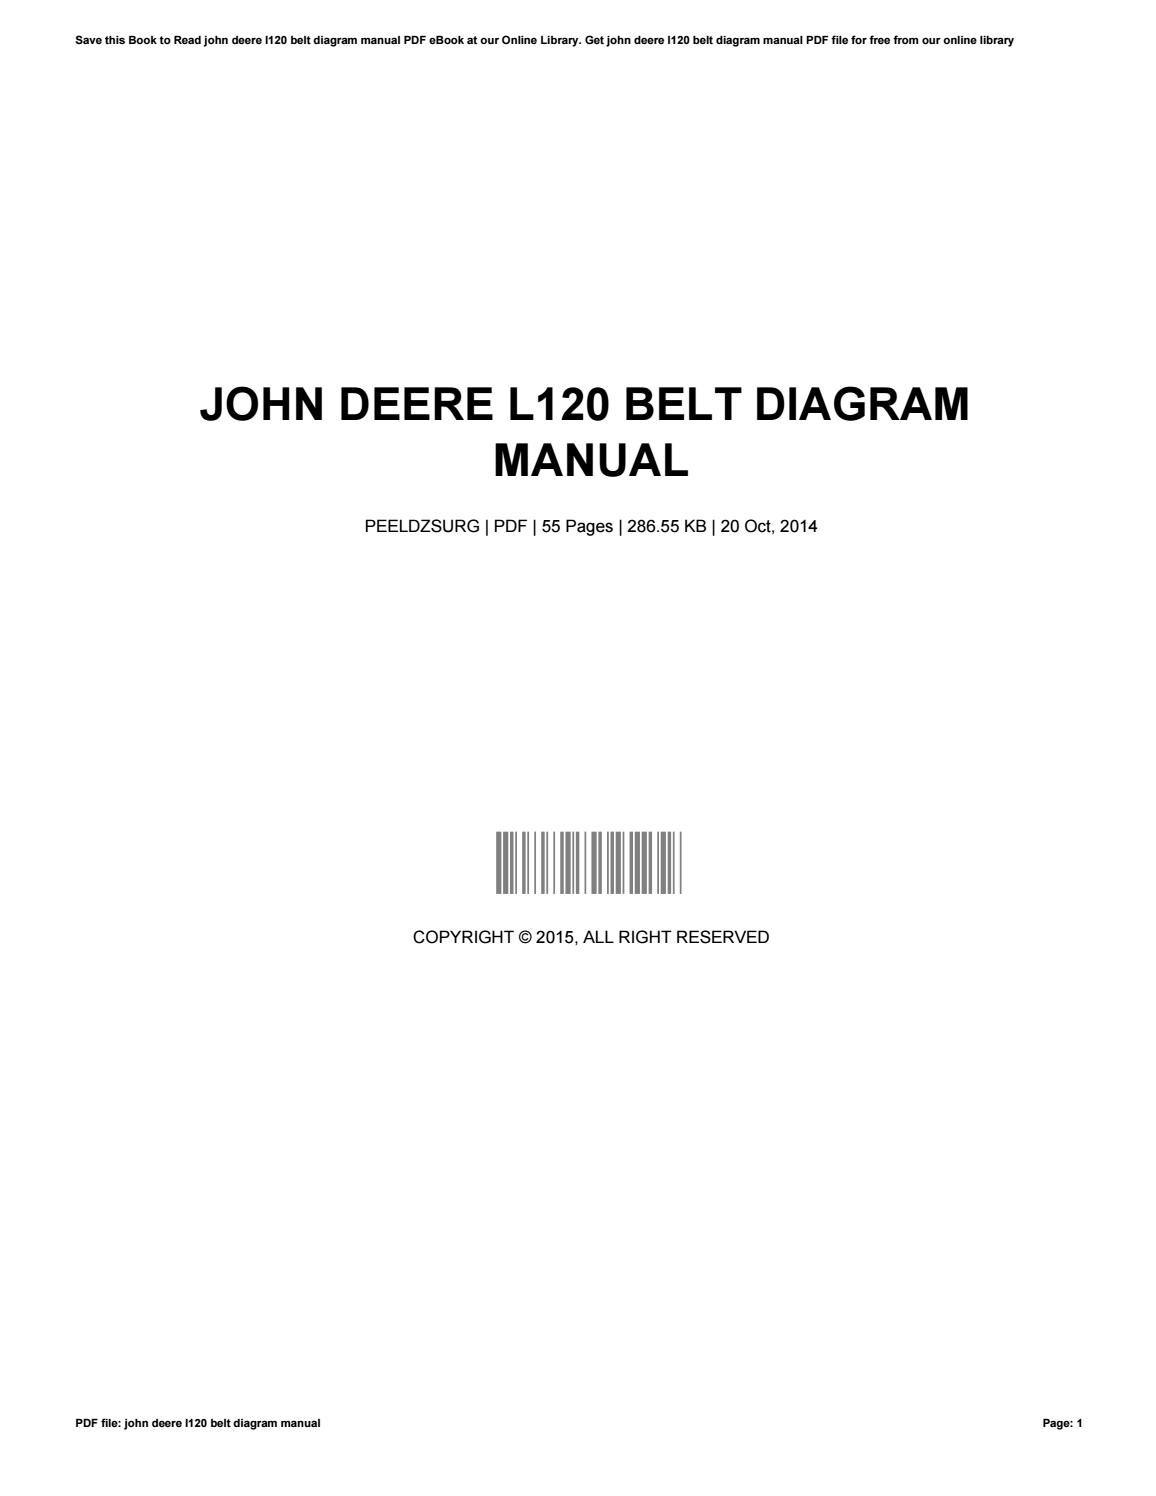 John deere l120 belt diagram manual by danialsummerlin1648 issuu pooptronica